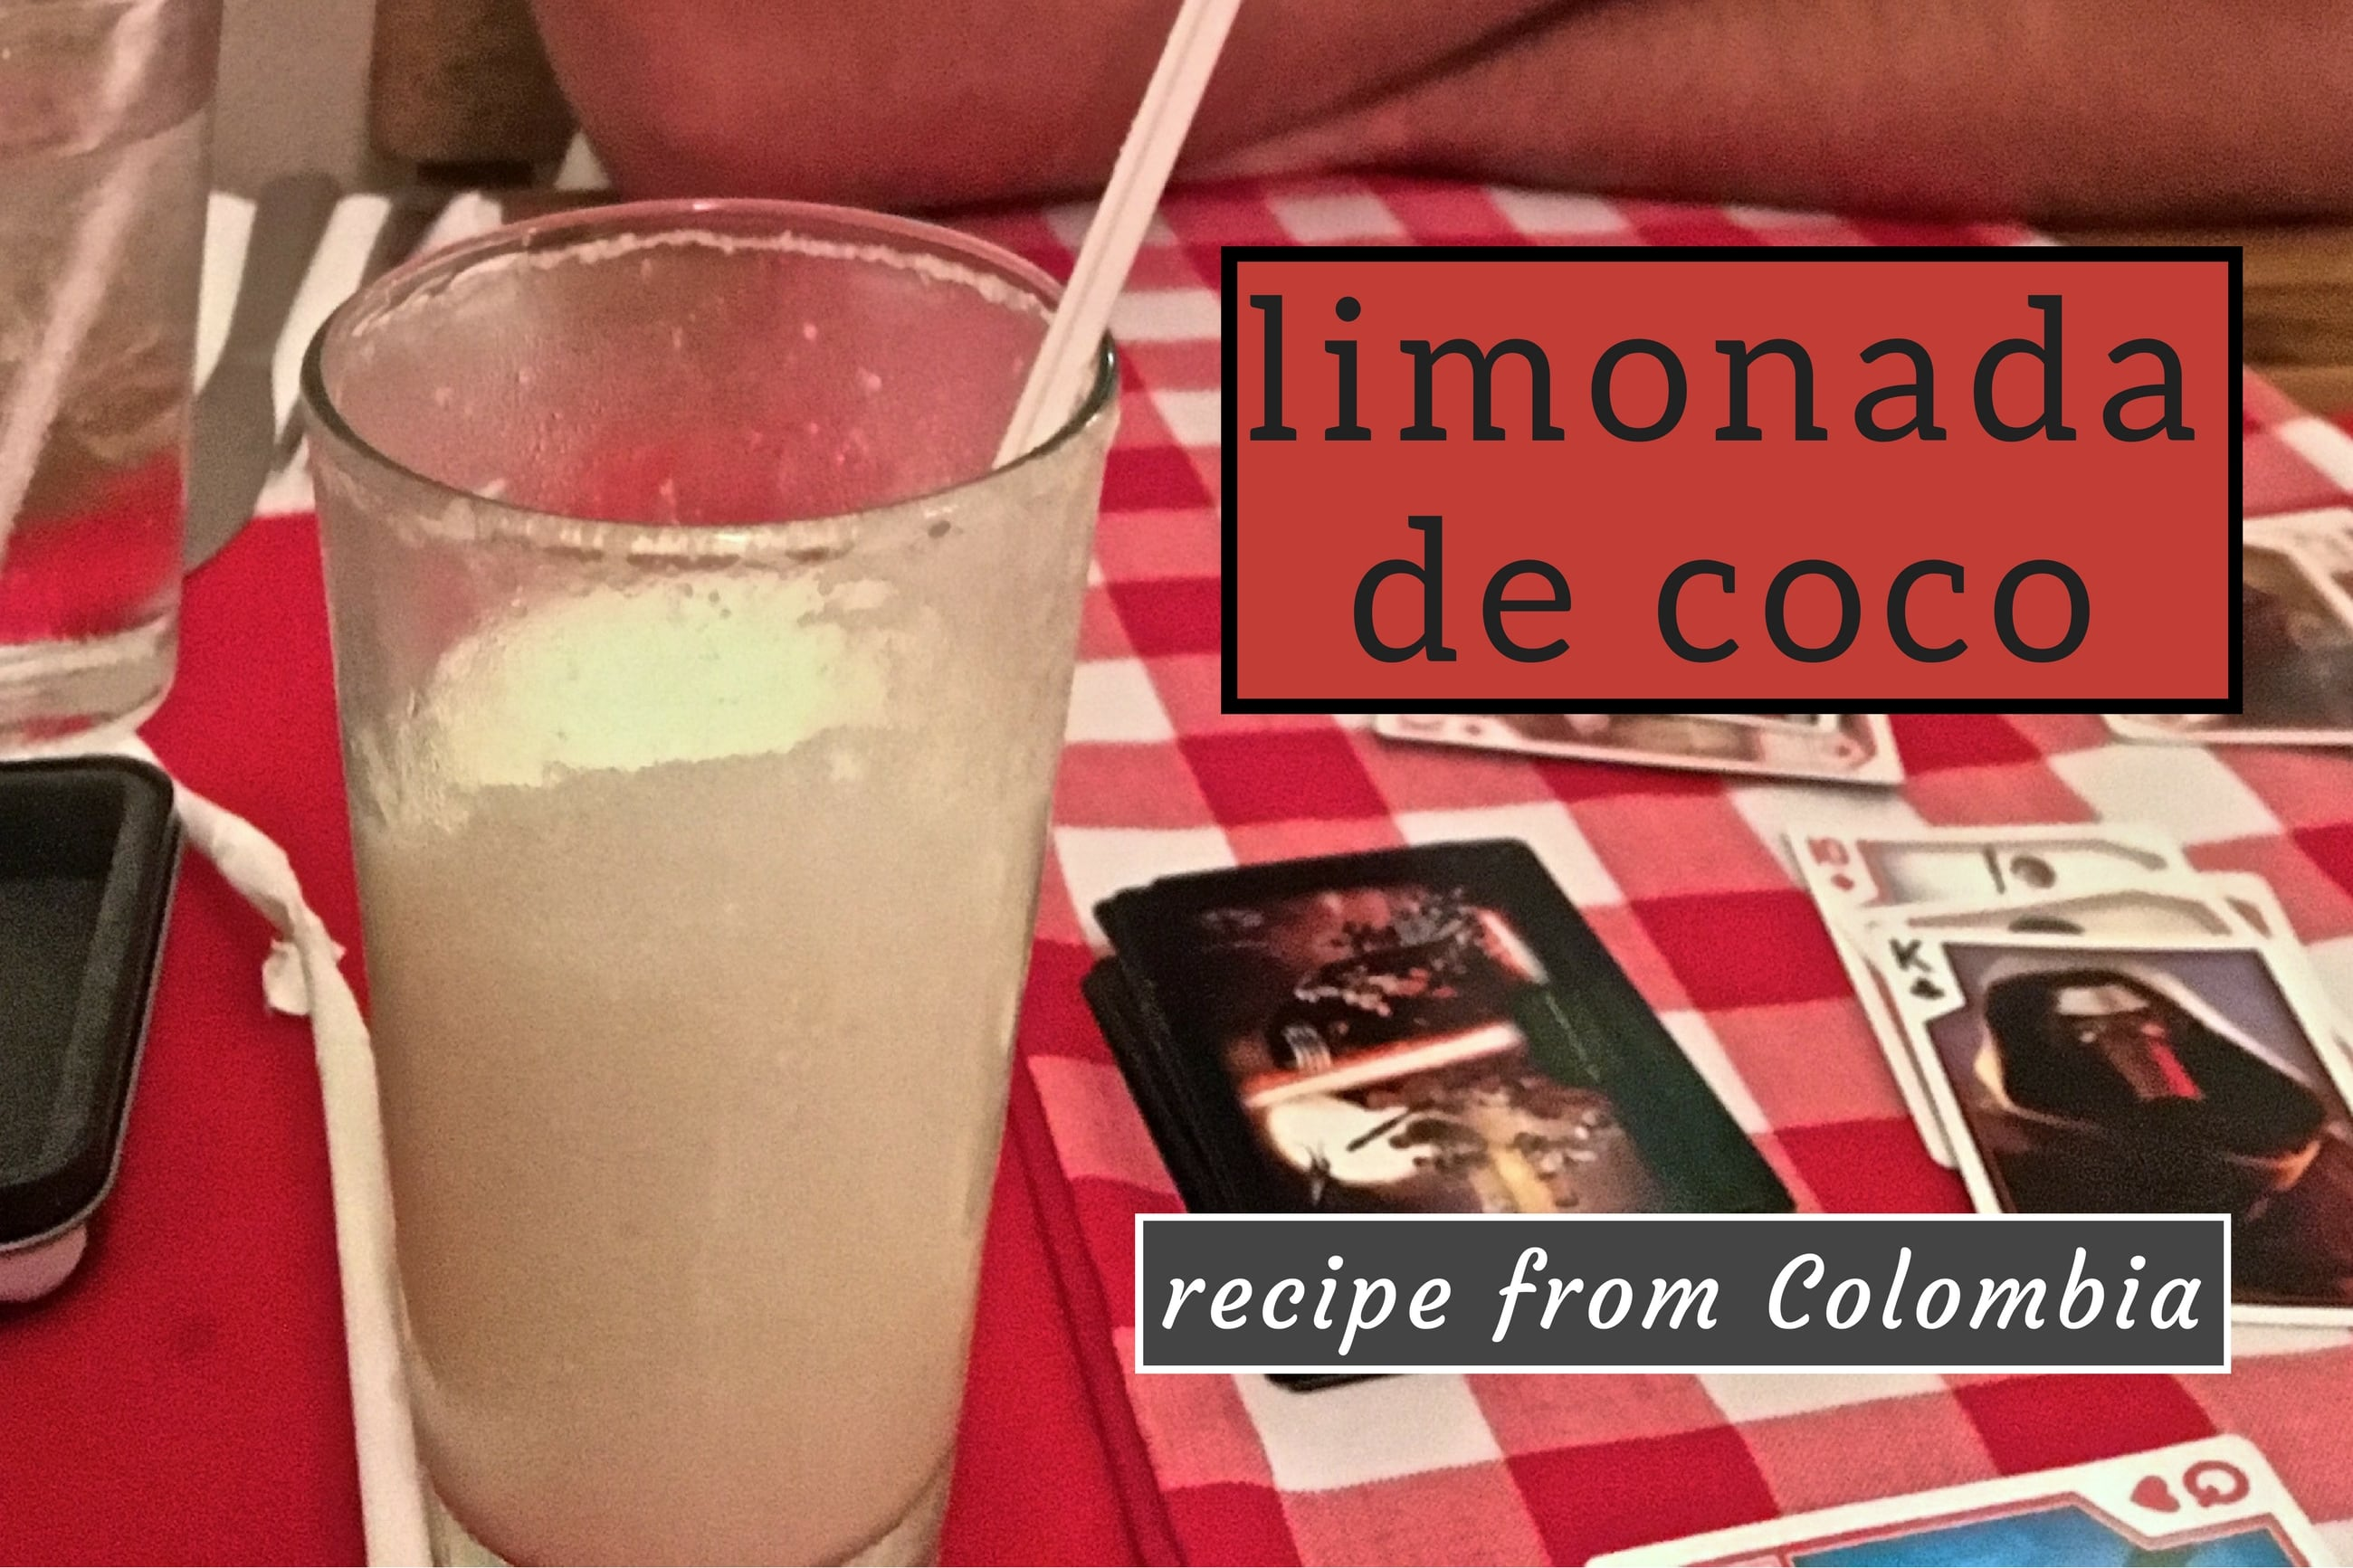 Colombian limonada de coco recipe